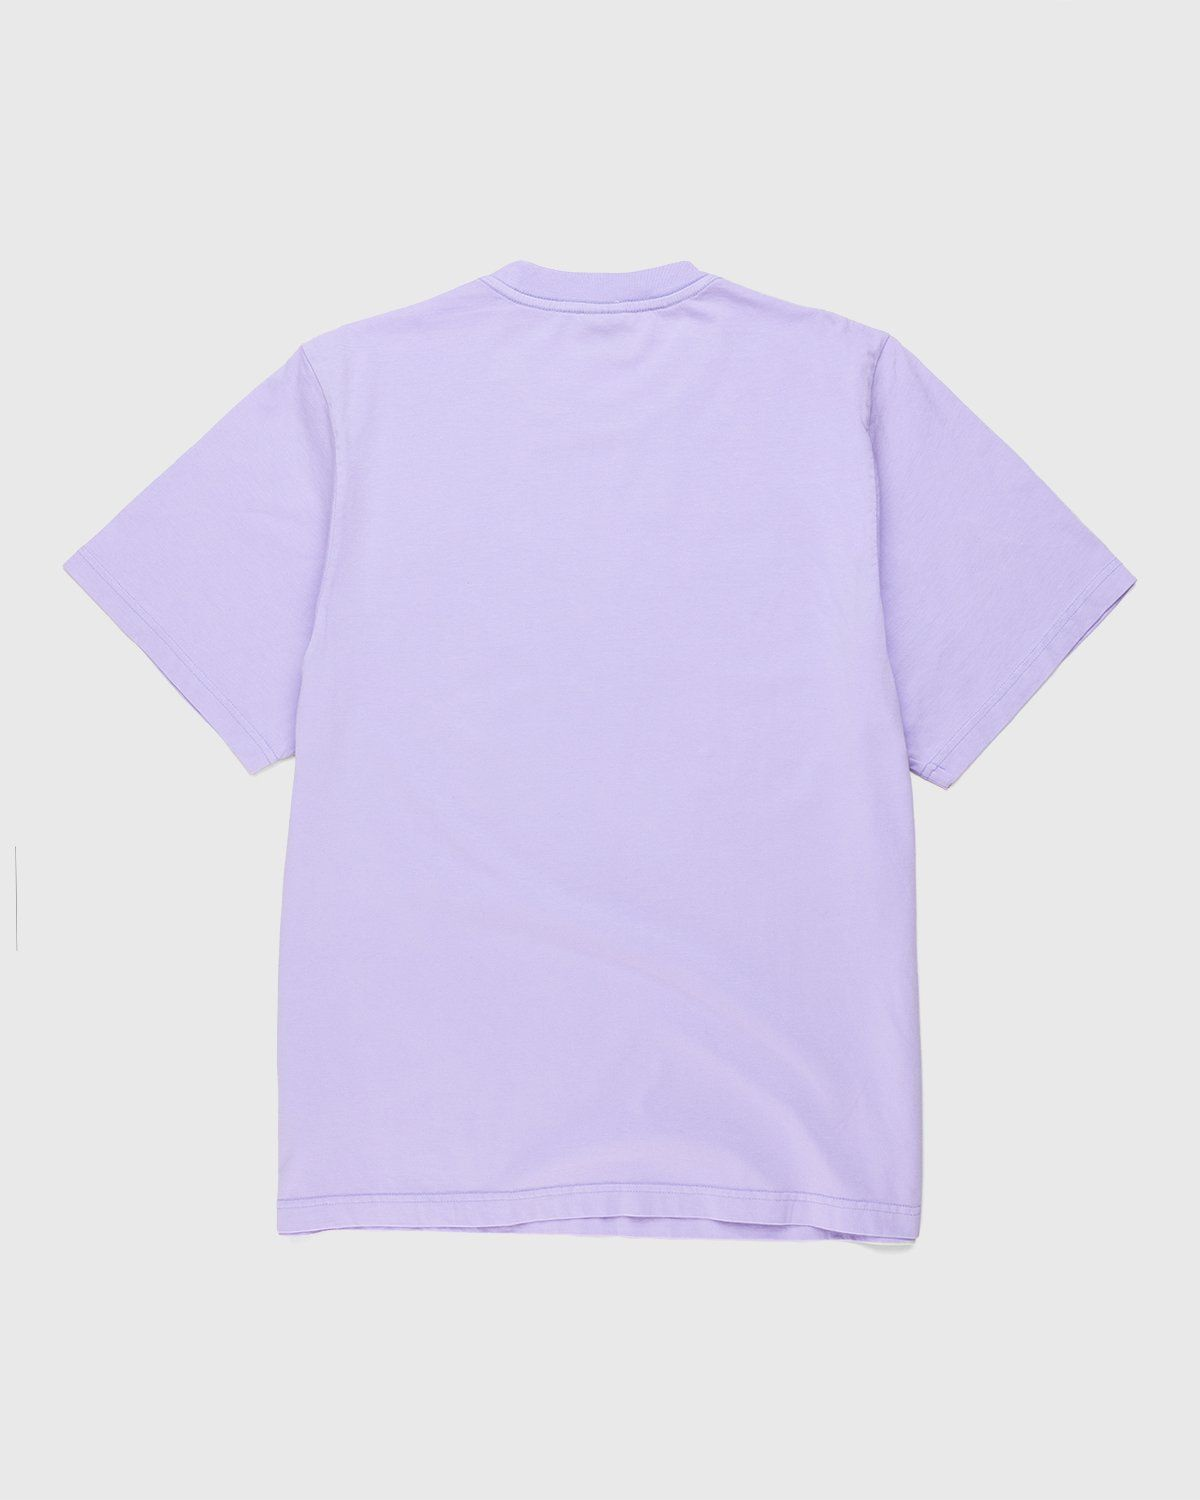 Noon Goons – Fly High T-Shirt Lavender - Image 2